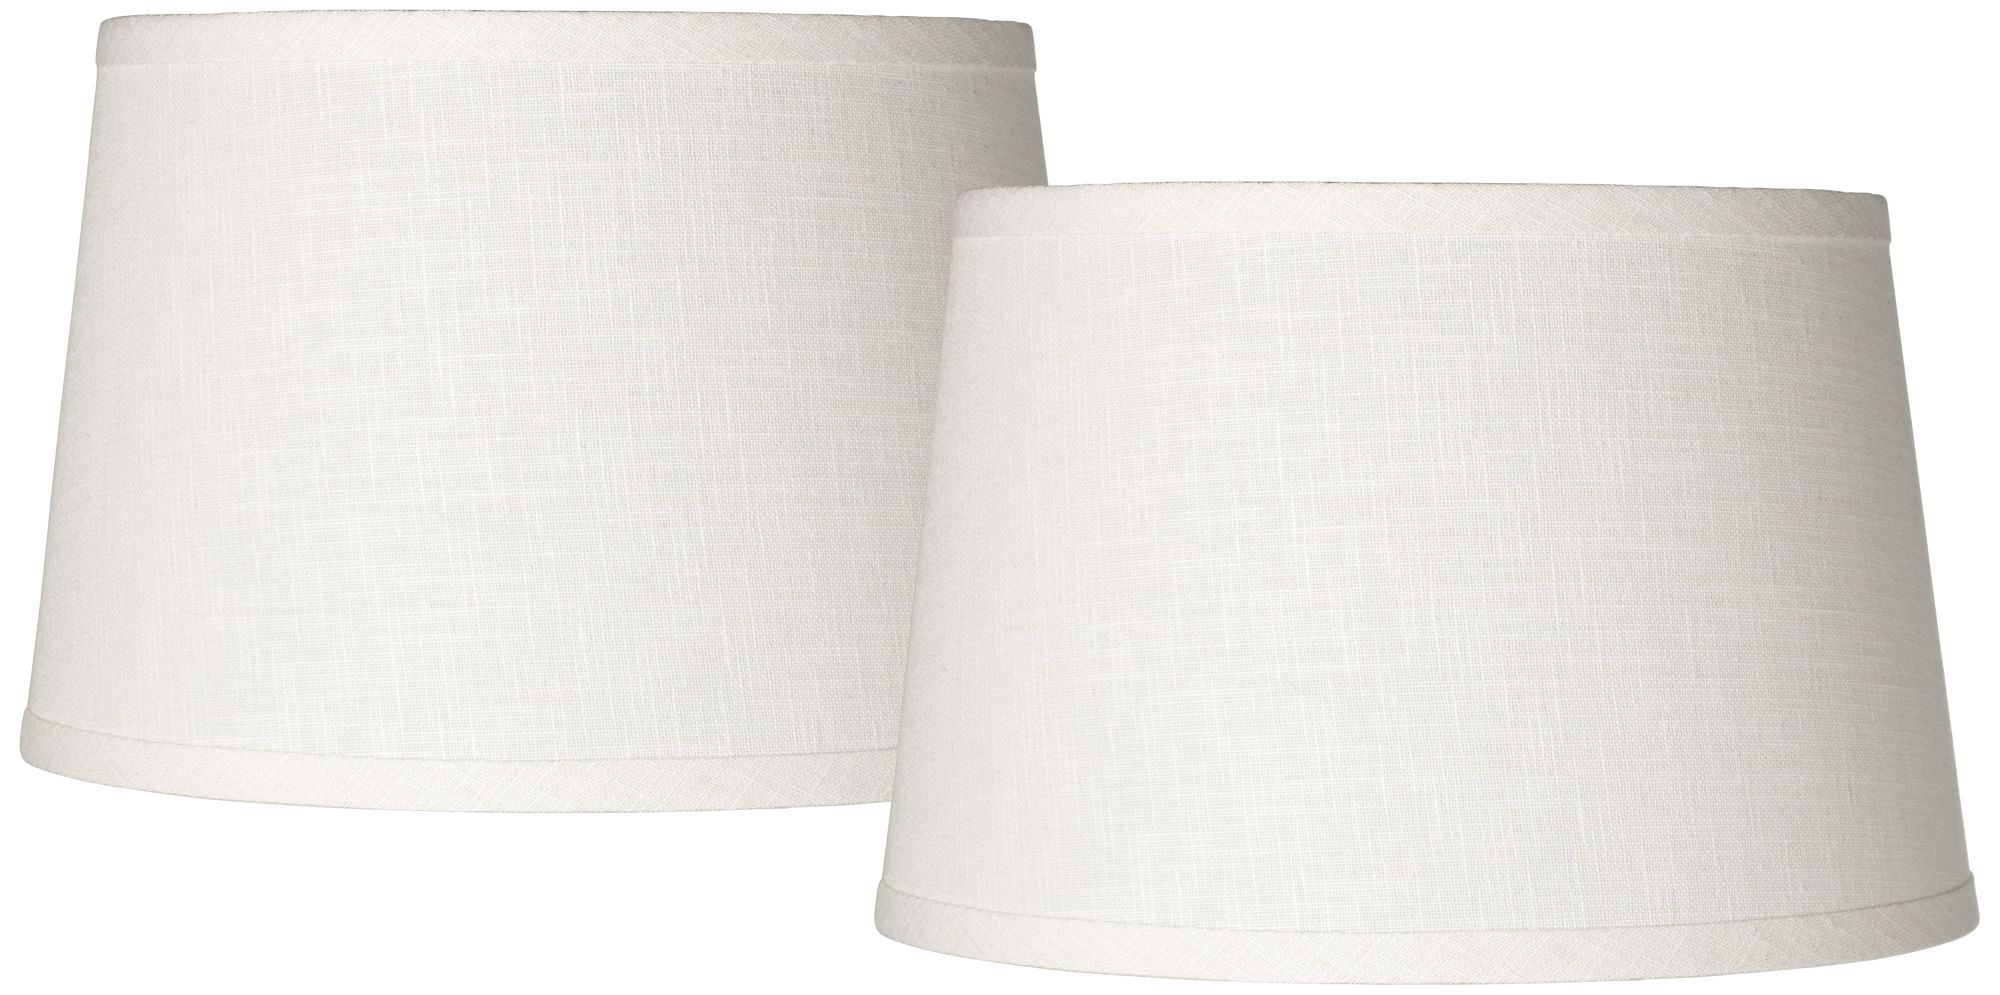 Exceptional Set Of 2 White Linen Drum Lamp Shade 10x12x8 (Spider)